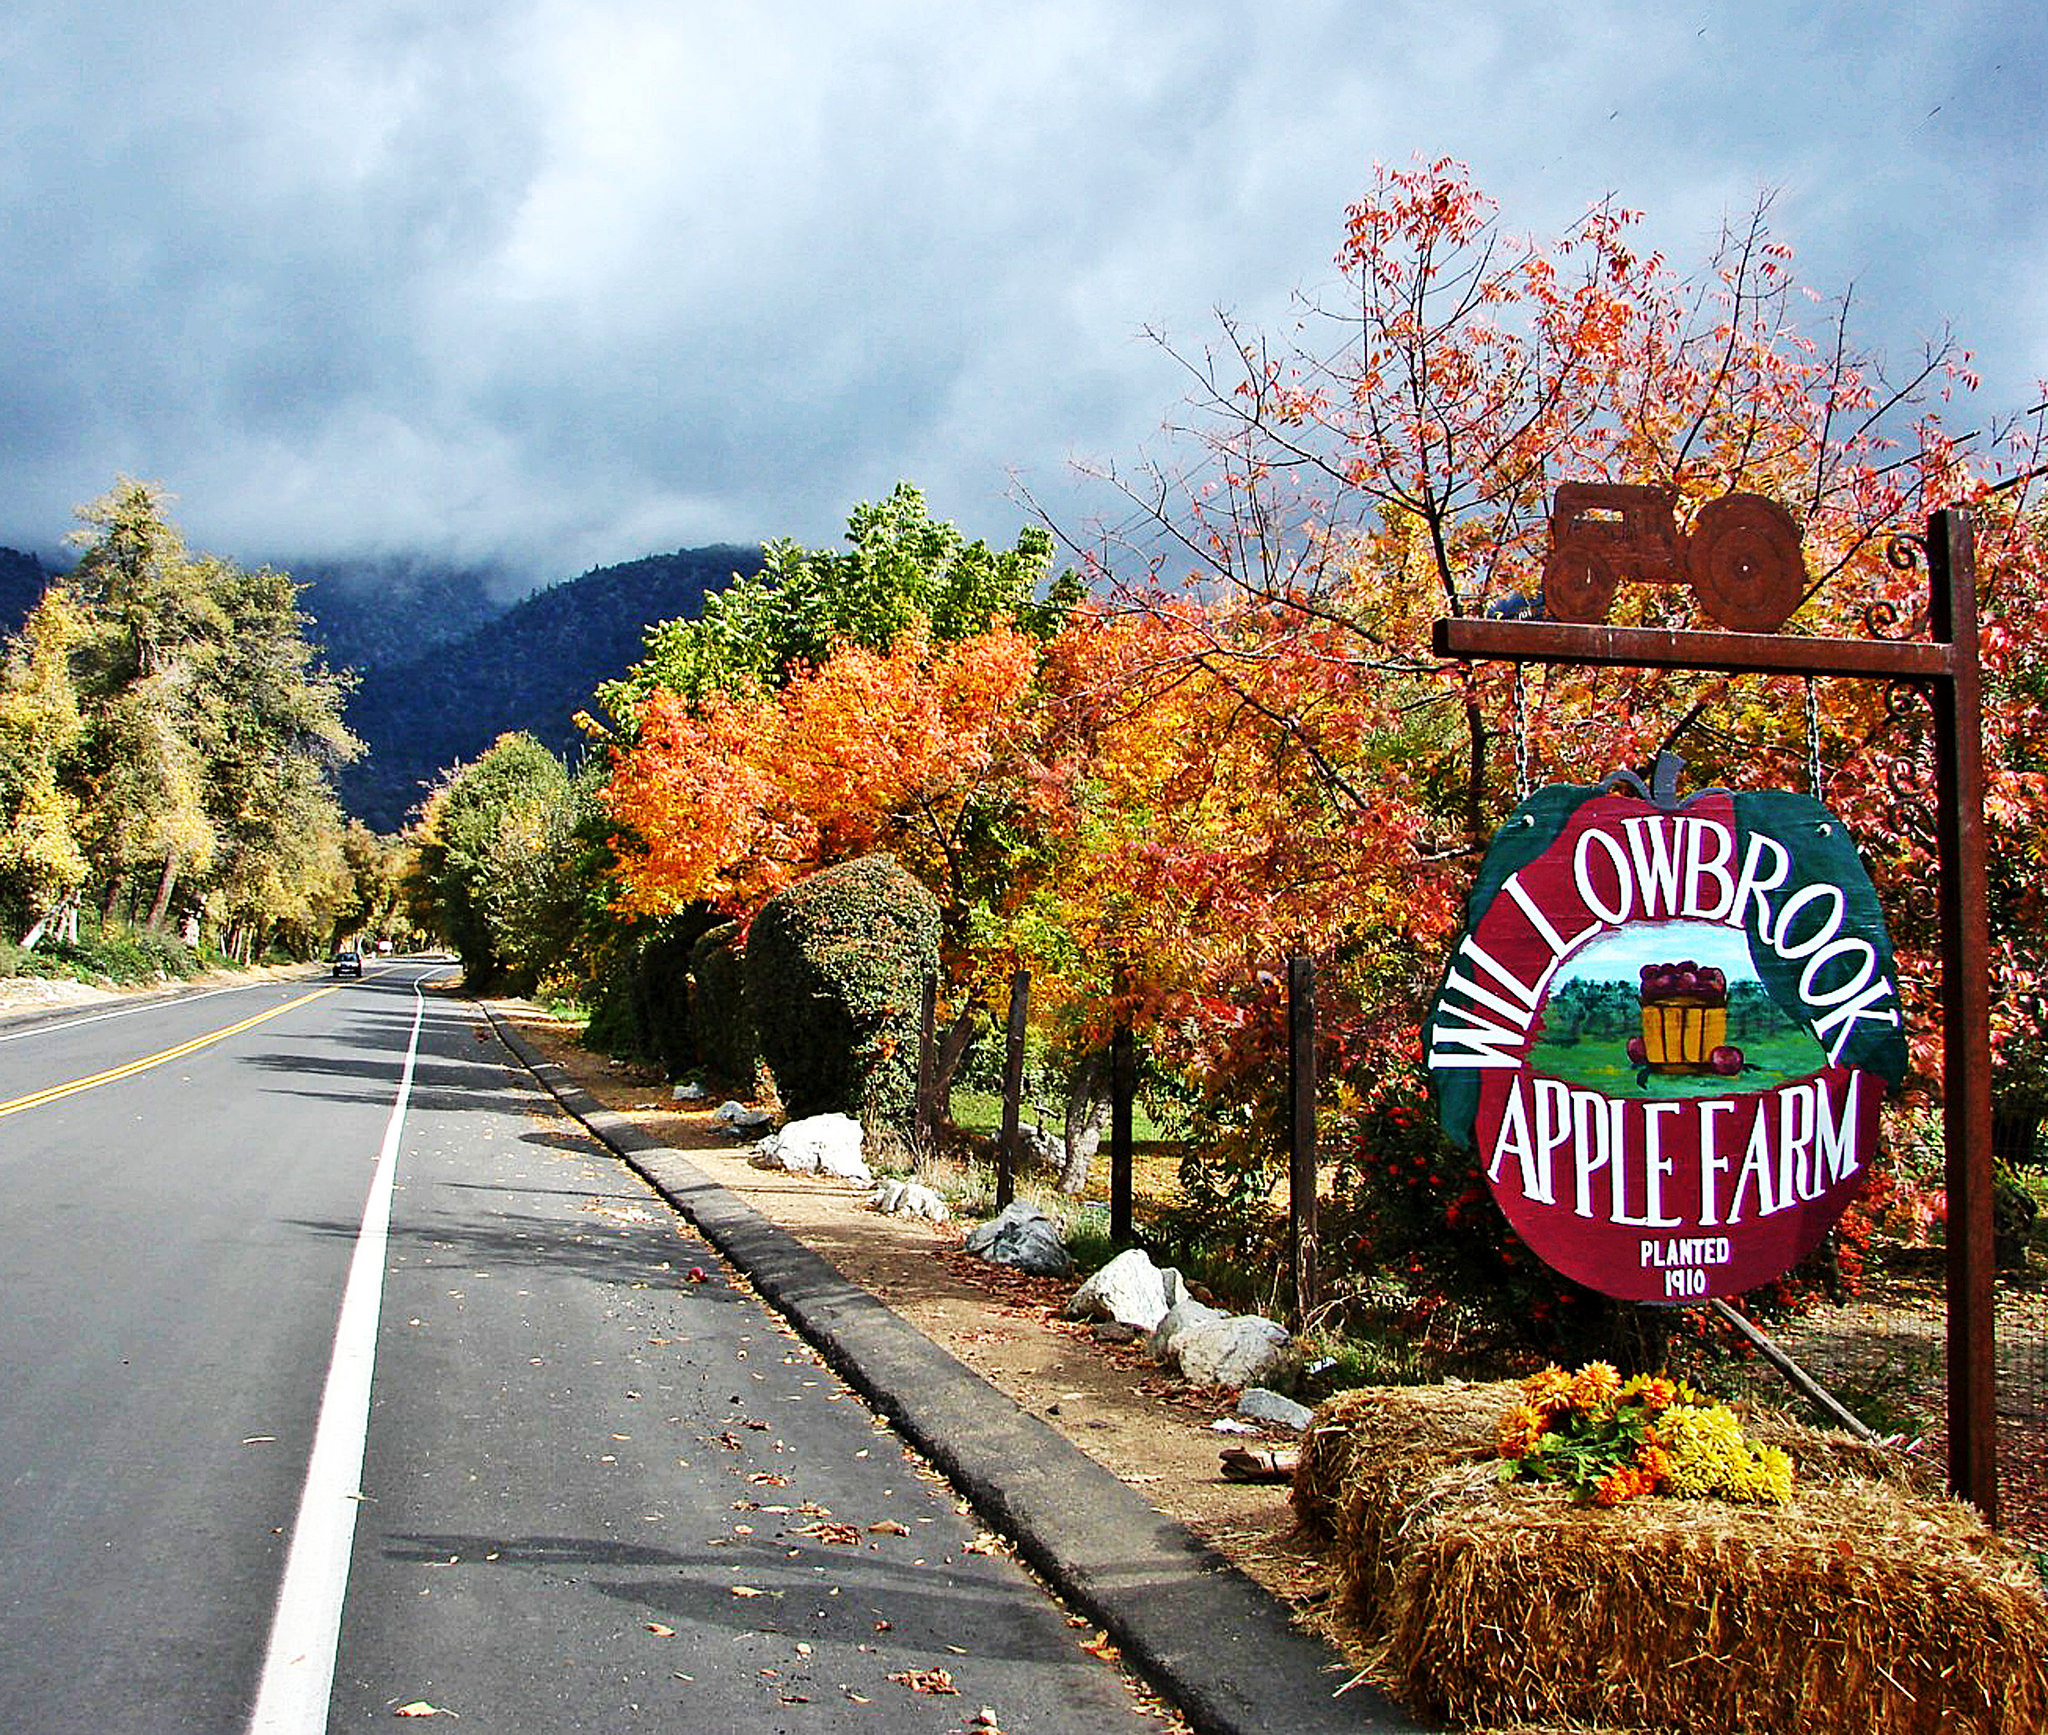 Image of Willowbrook Apple Farm entrance